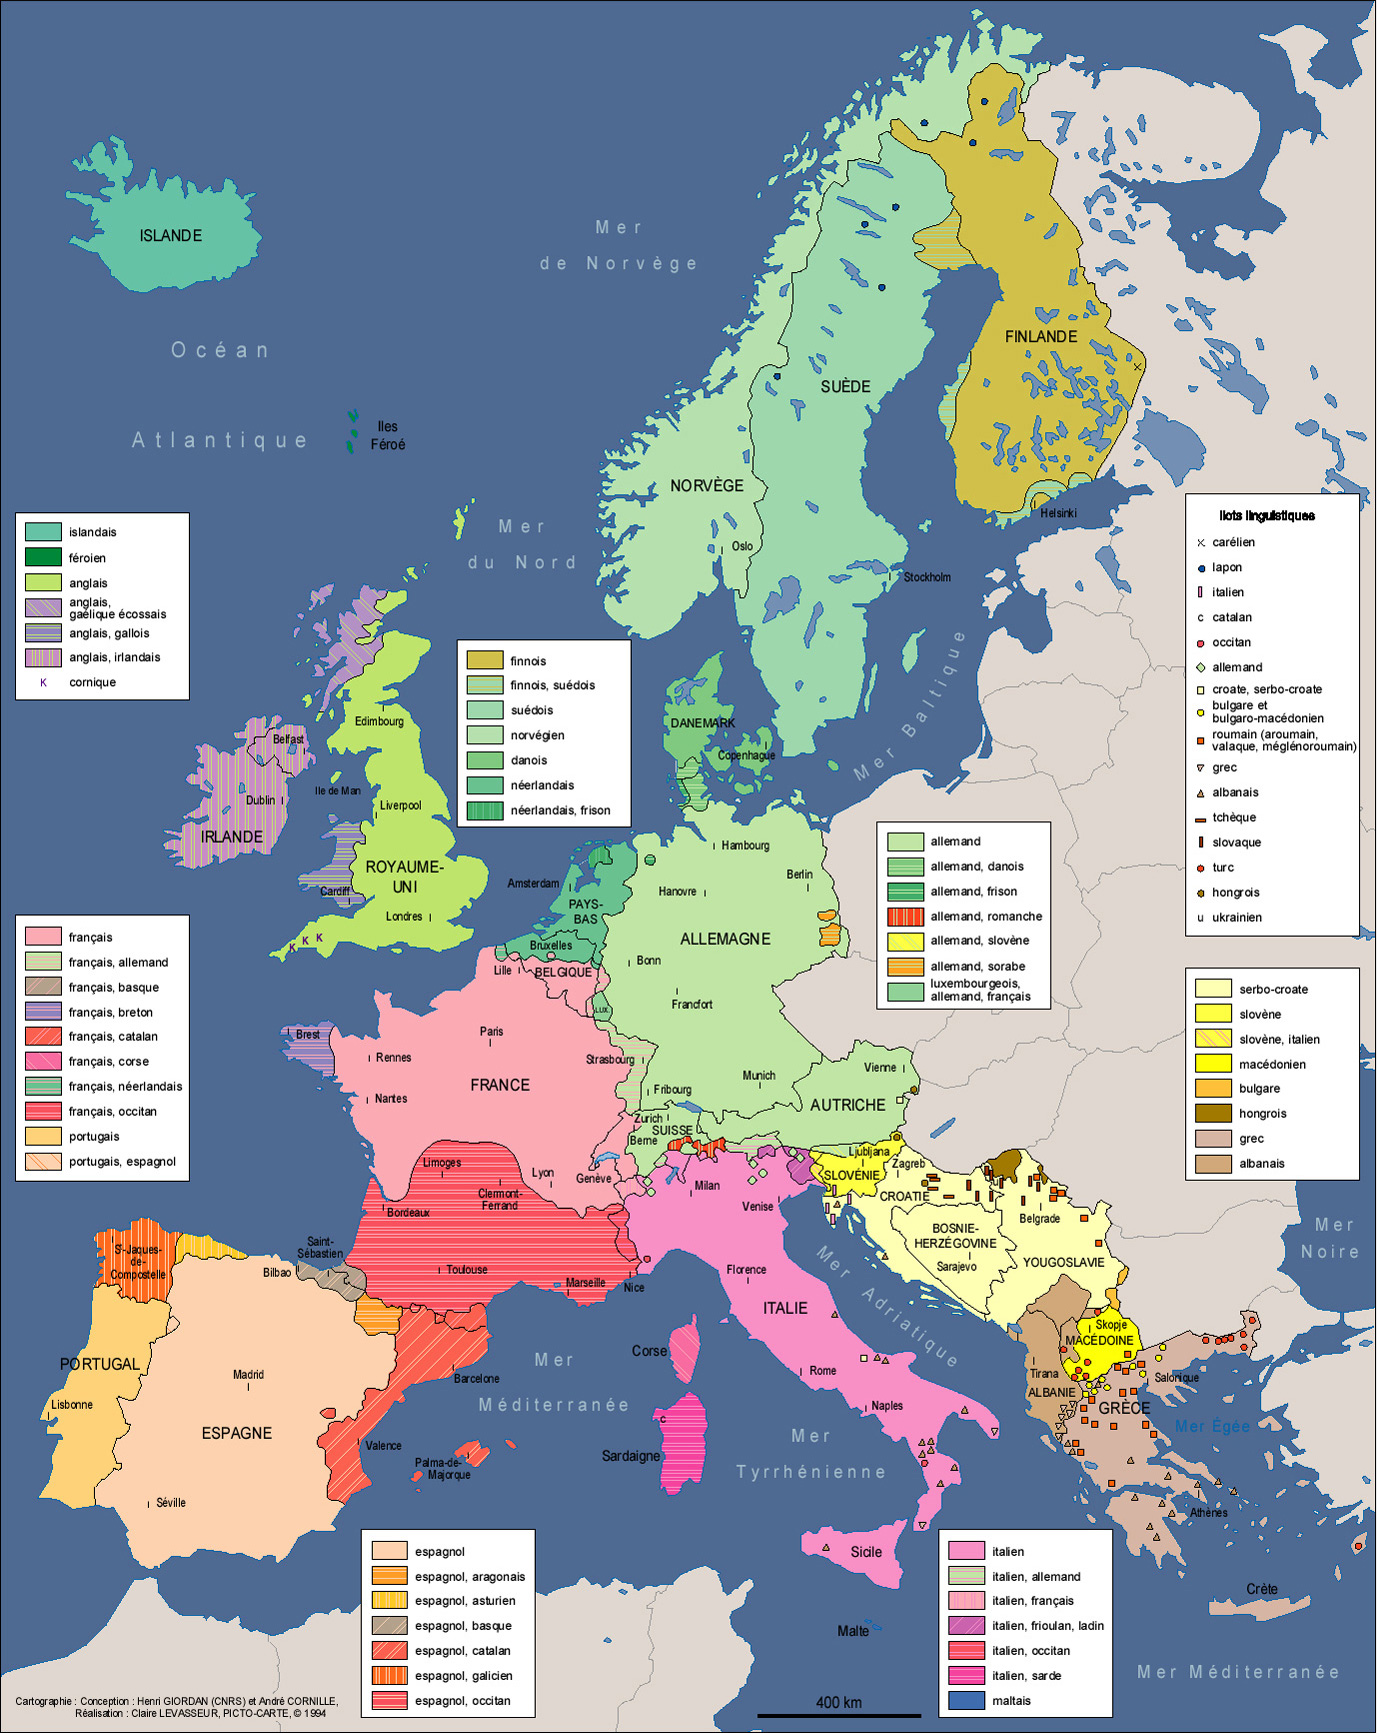 Carte des langues d'Europe